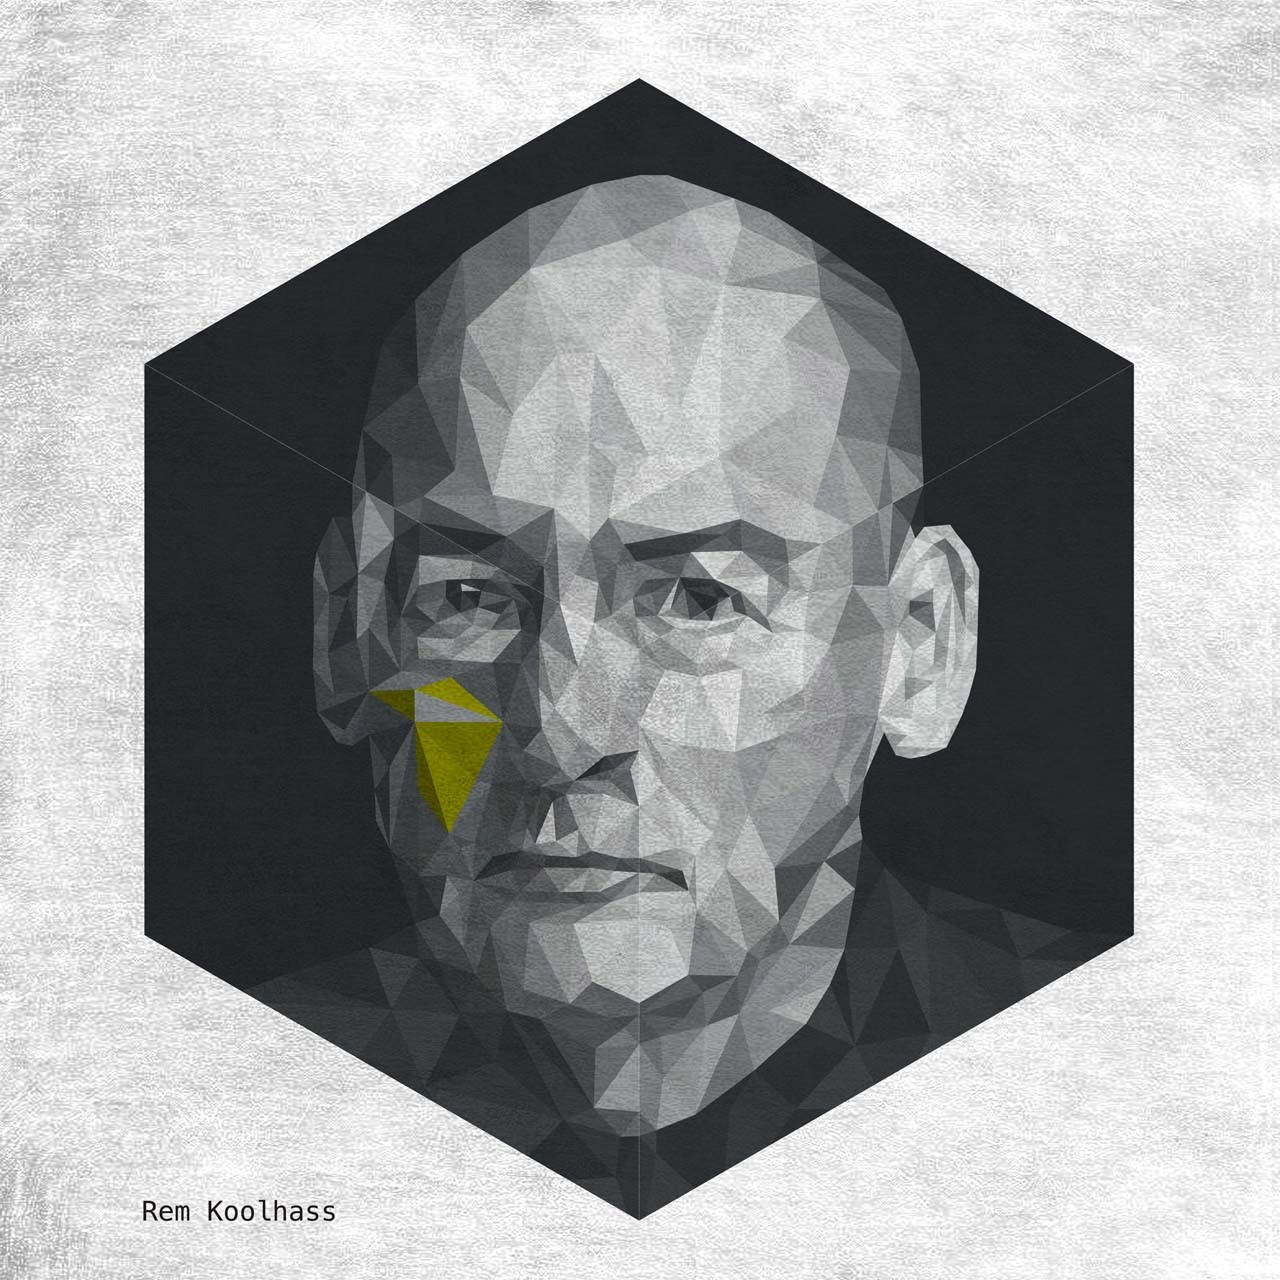 REM KOOLHAAS. Image Courtesy of Yannick Martin